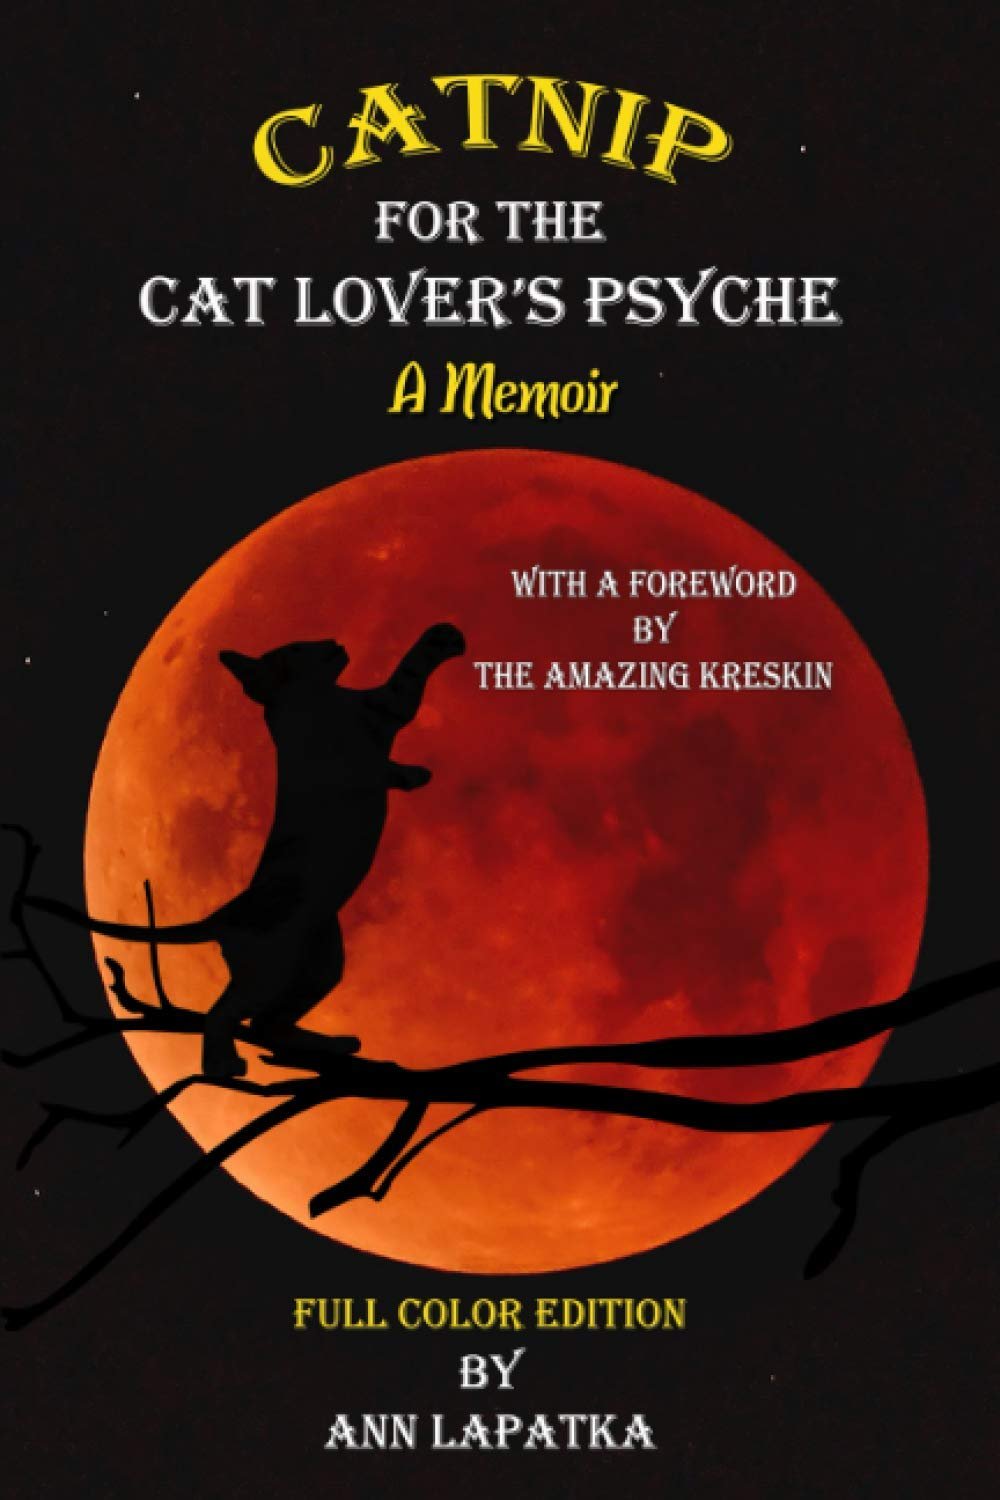 Catnip for the Cat Lover's Psyche